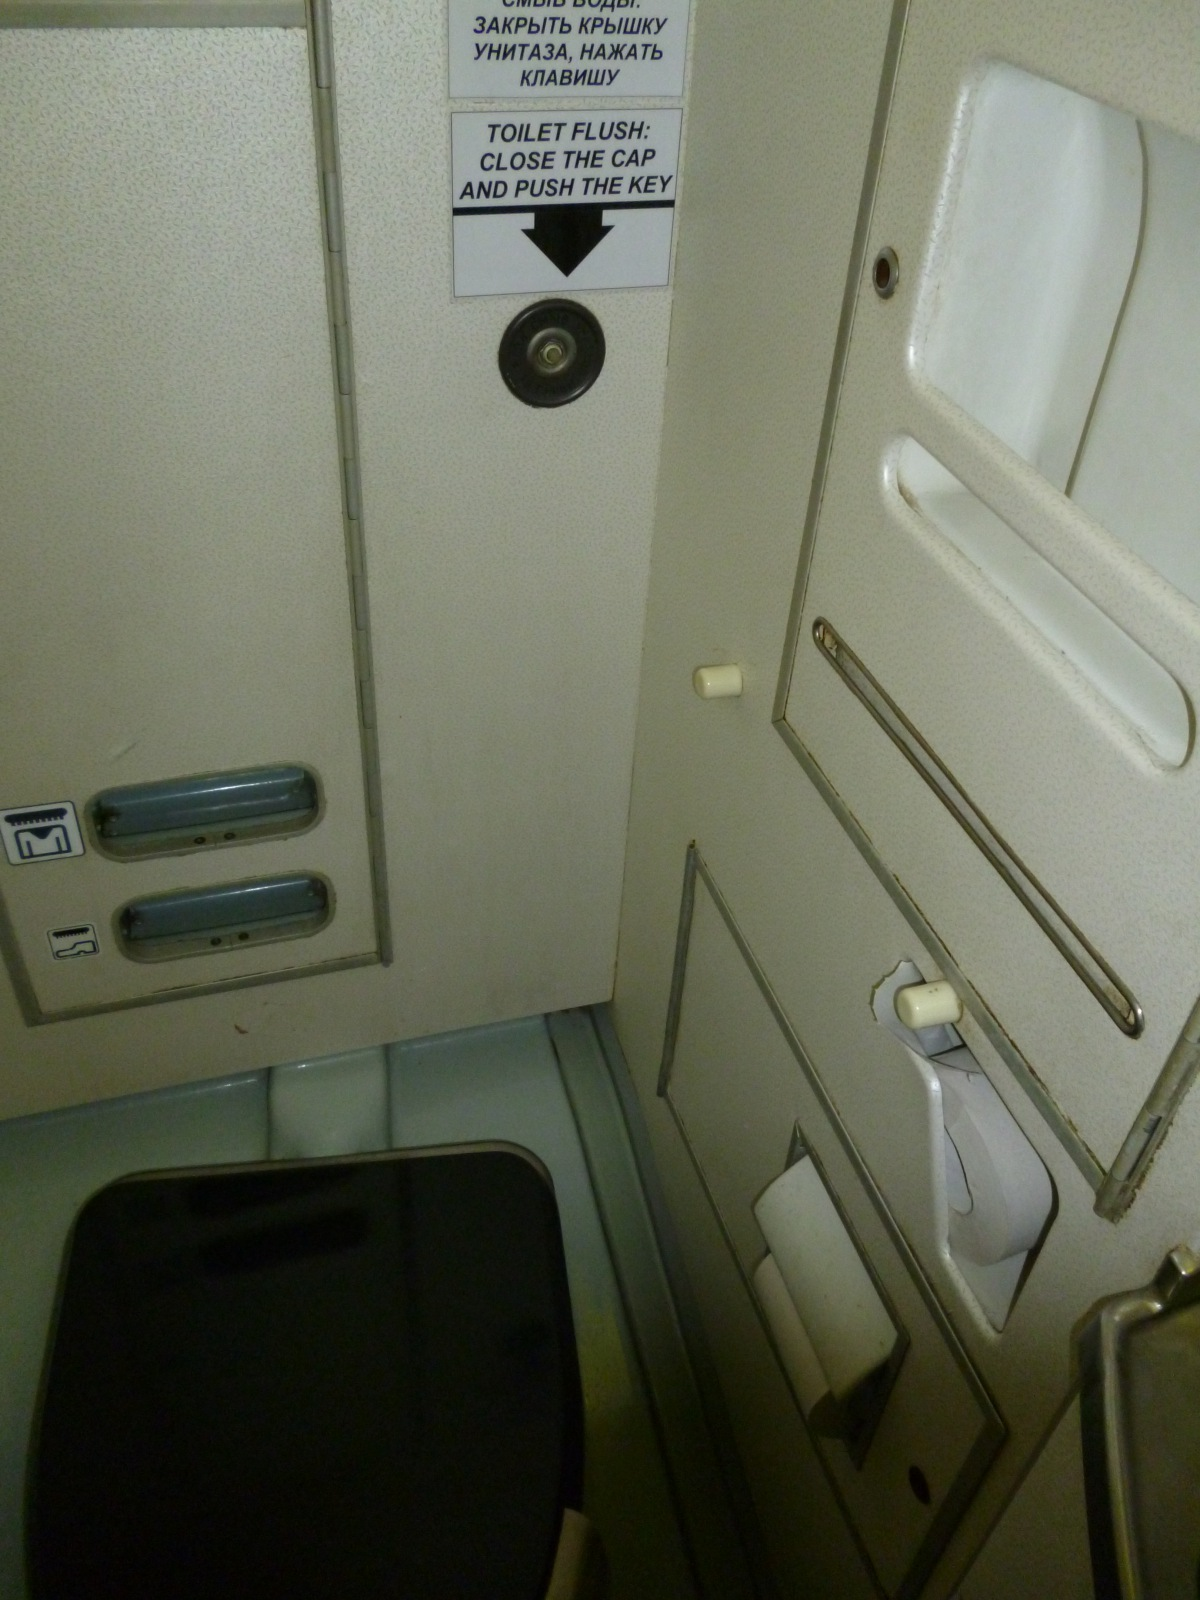 Restroom of a Tu-204-300 of Vladivostok Air